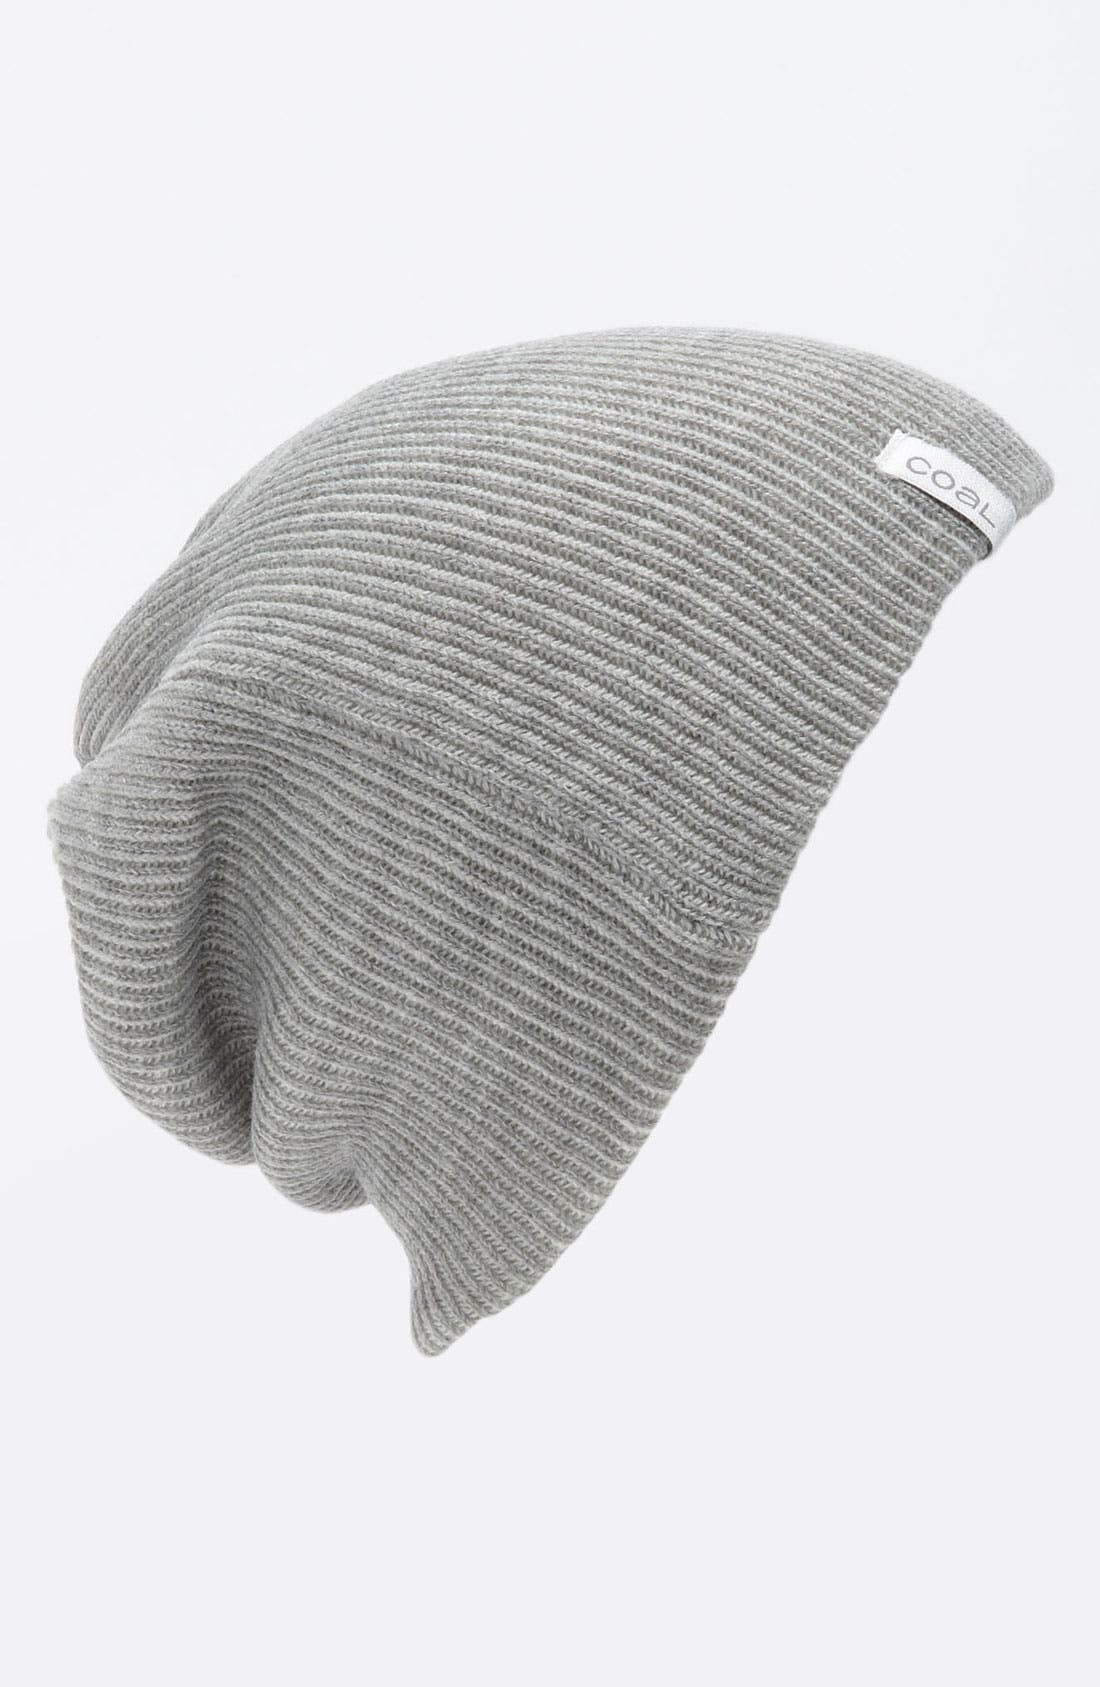 Main Image - Coal 'Binary' Knit Cap